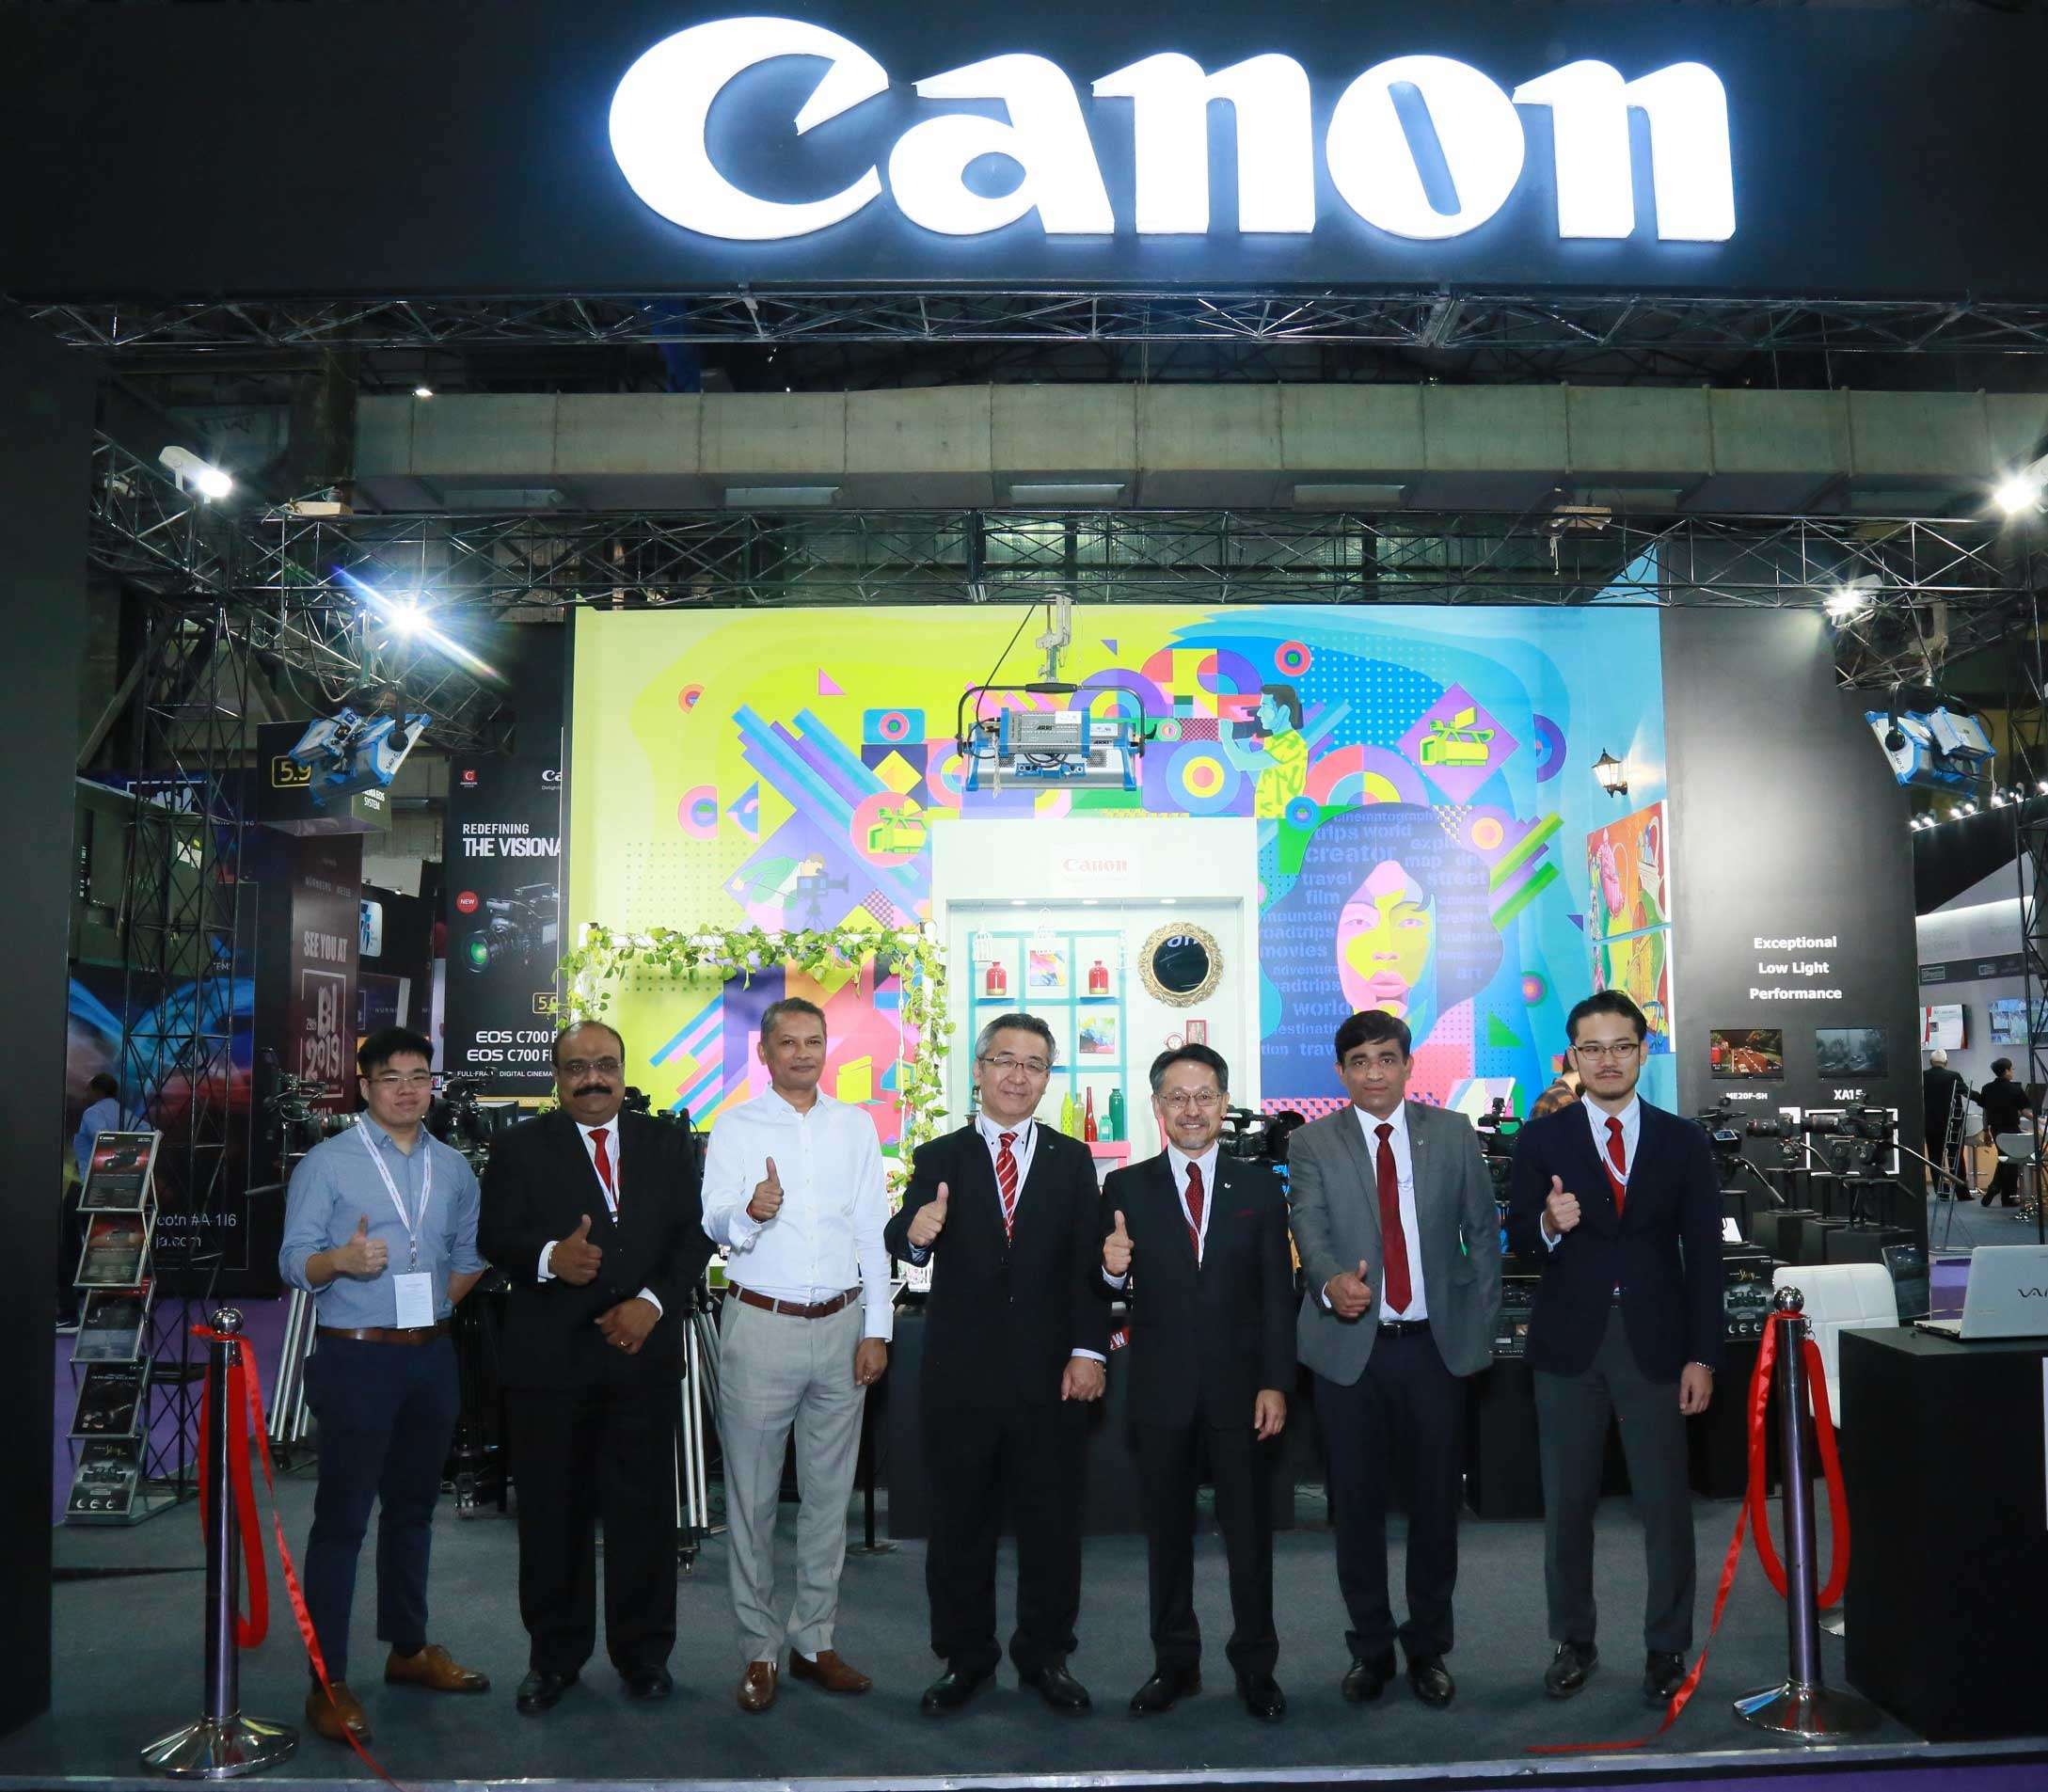 Canon India demonstrates groundbreaking technology and innovation at Broadcast India Show 2018